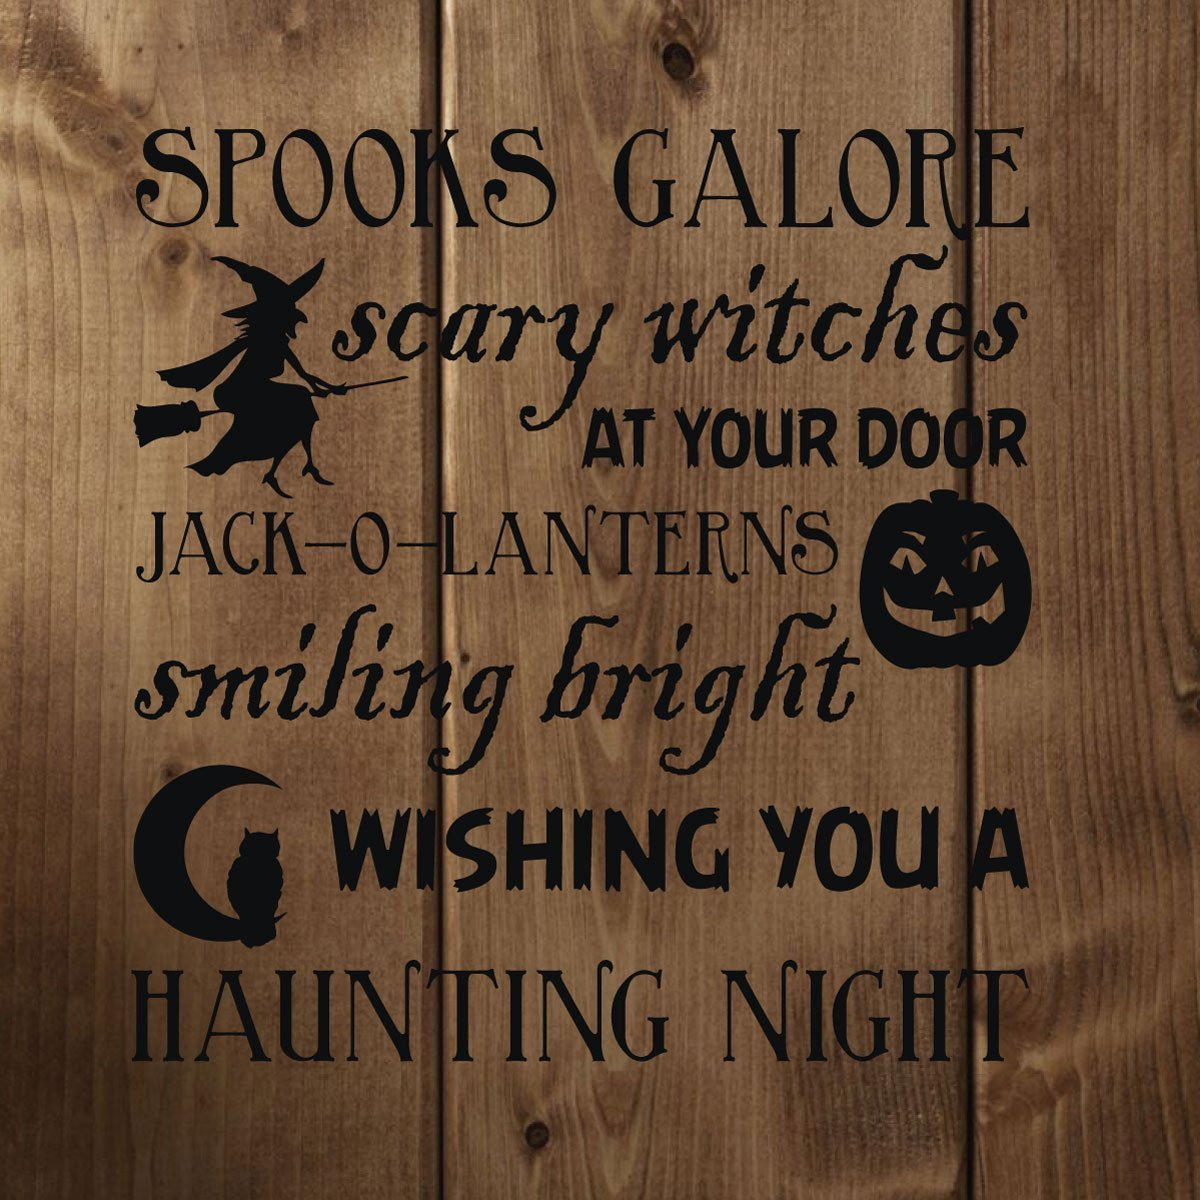 Halloween Decor - Halloween Poem Vinyl Wall Decal - Witches, Jack-O-Lanterns, Trick or Treat